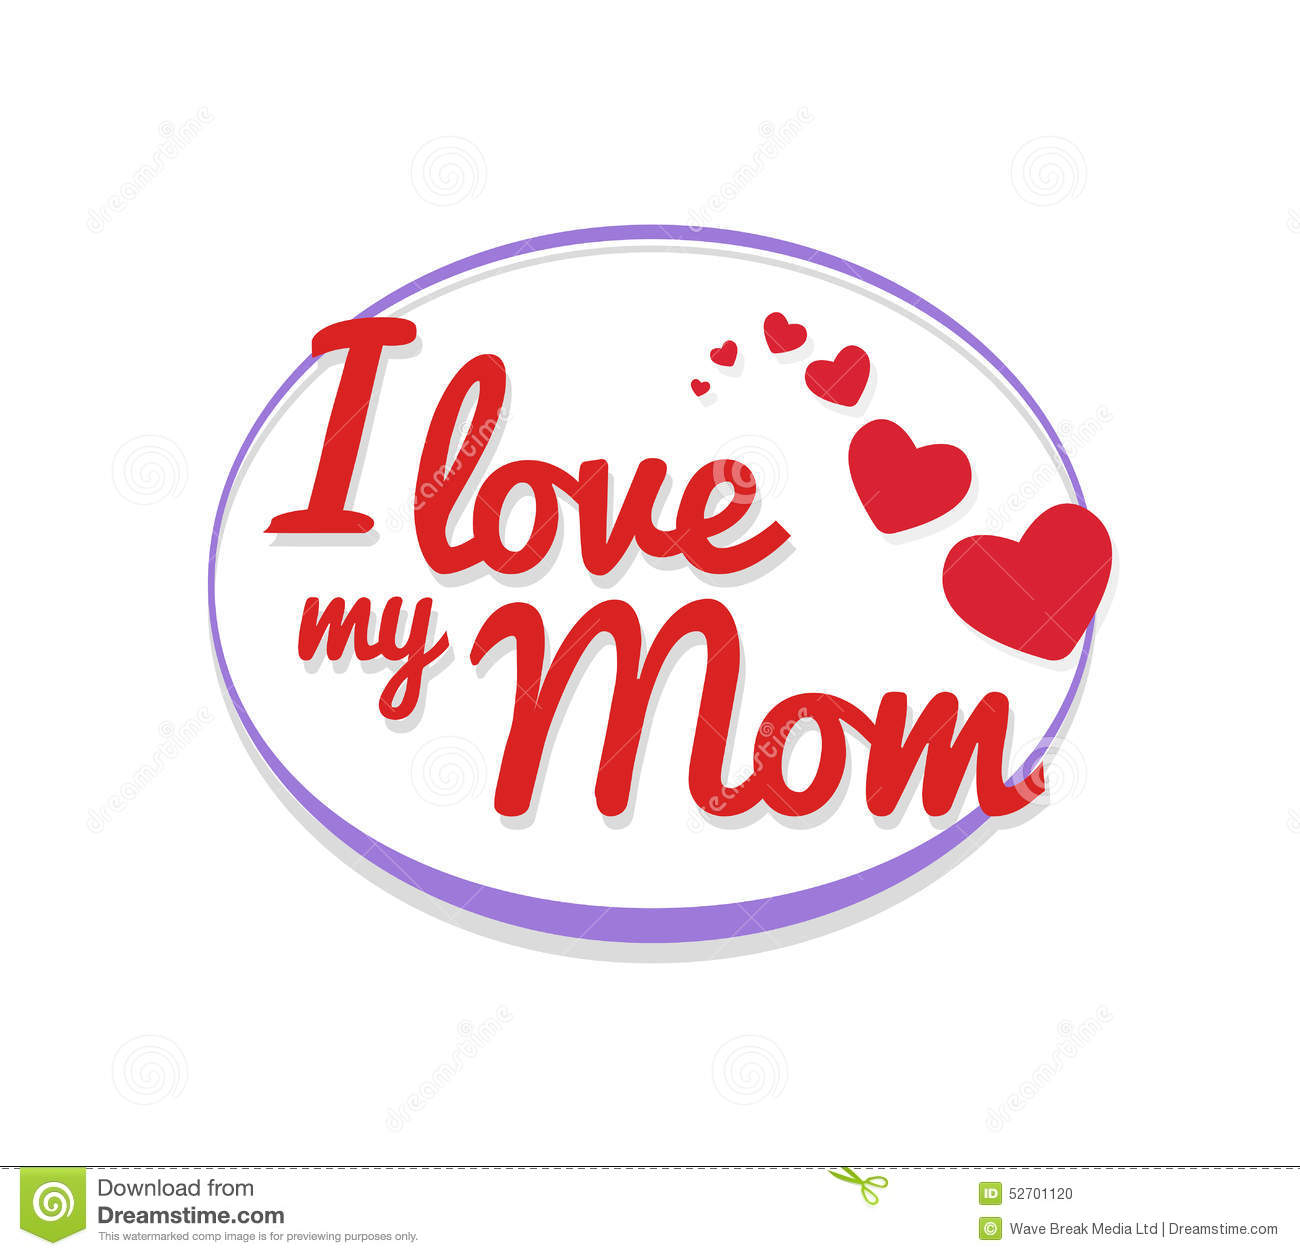 I love my mom stock vector illustration of pencil text 28738821 i love my mom vector stock photo altavistaventures Choice Image